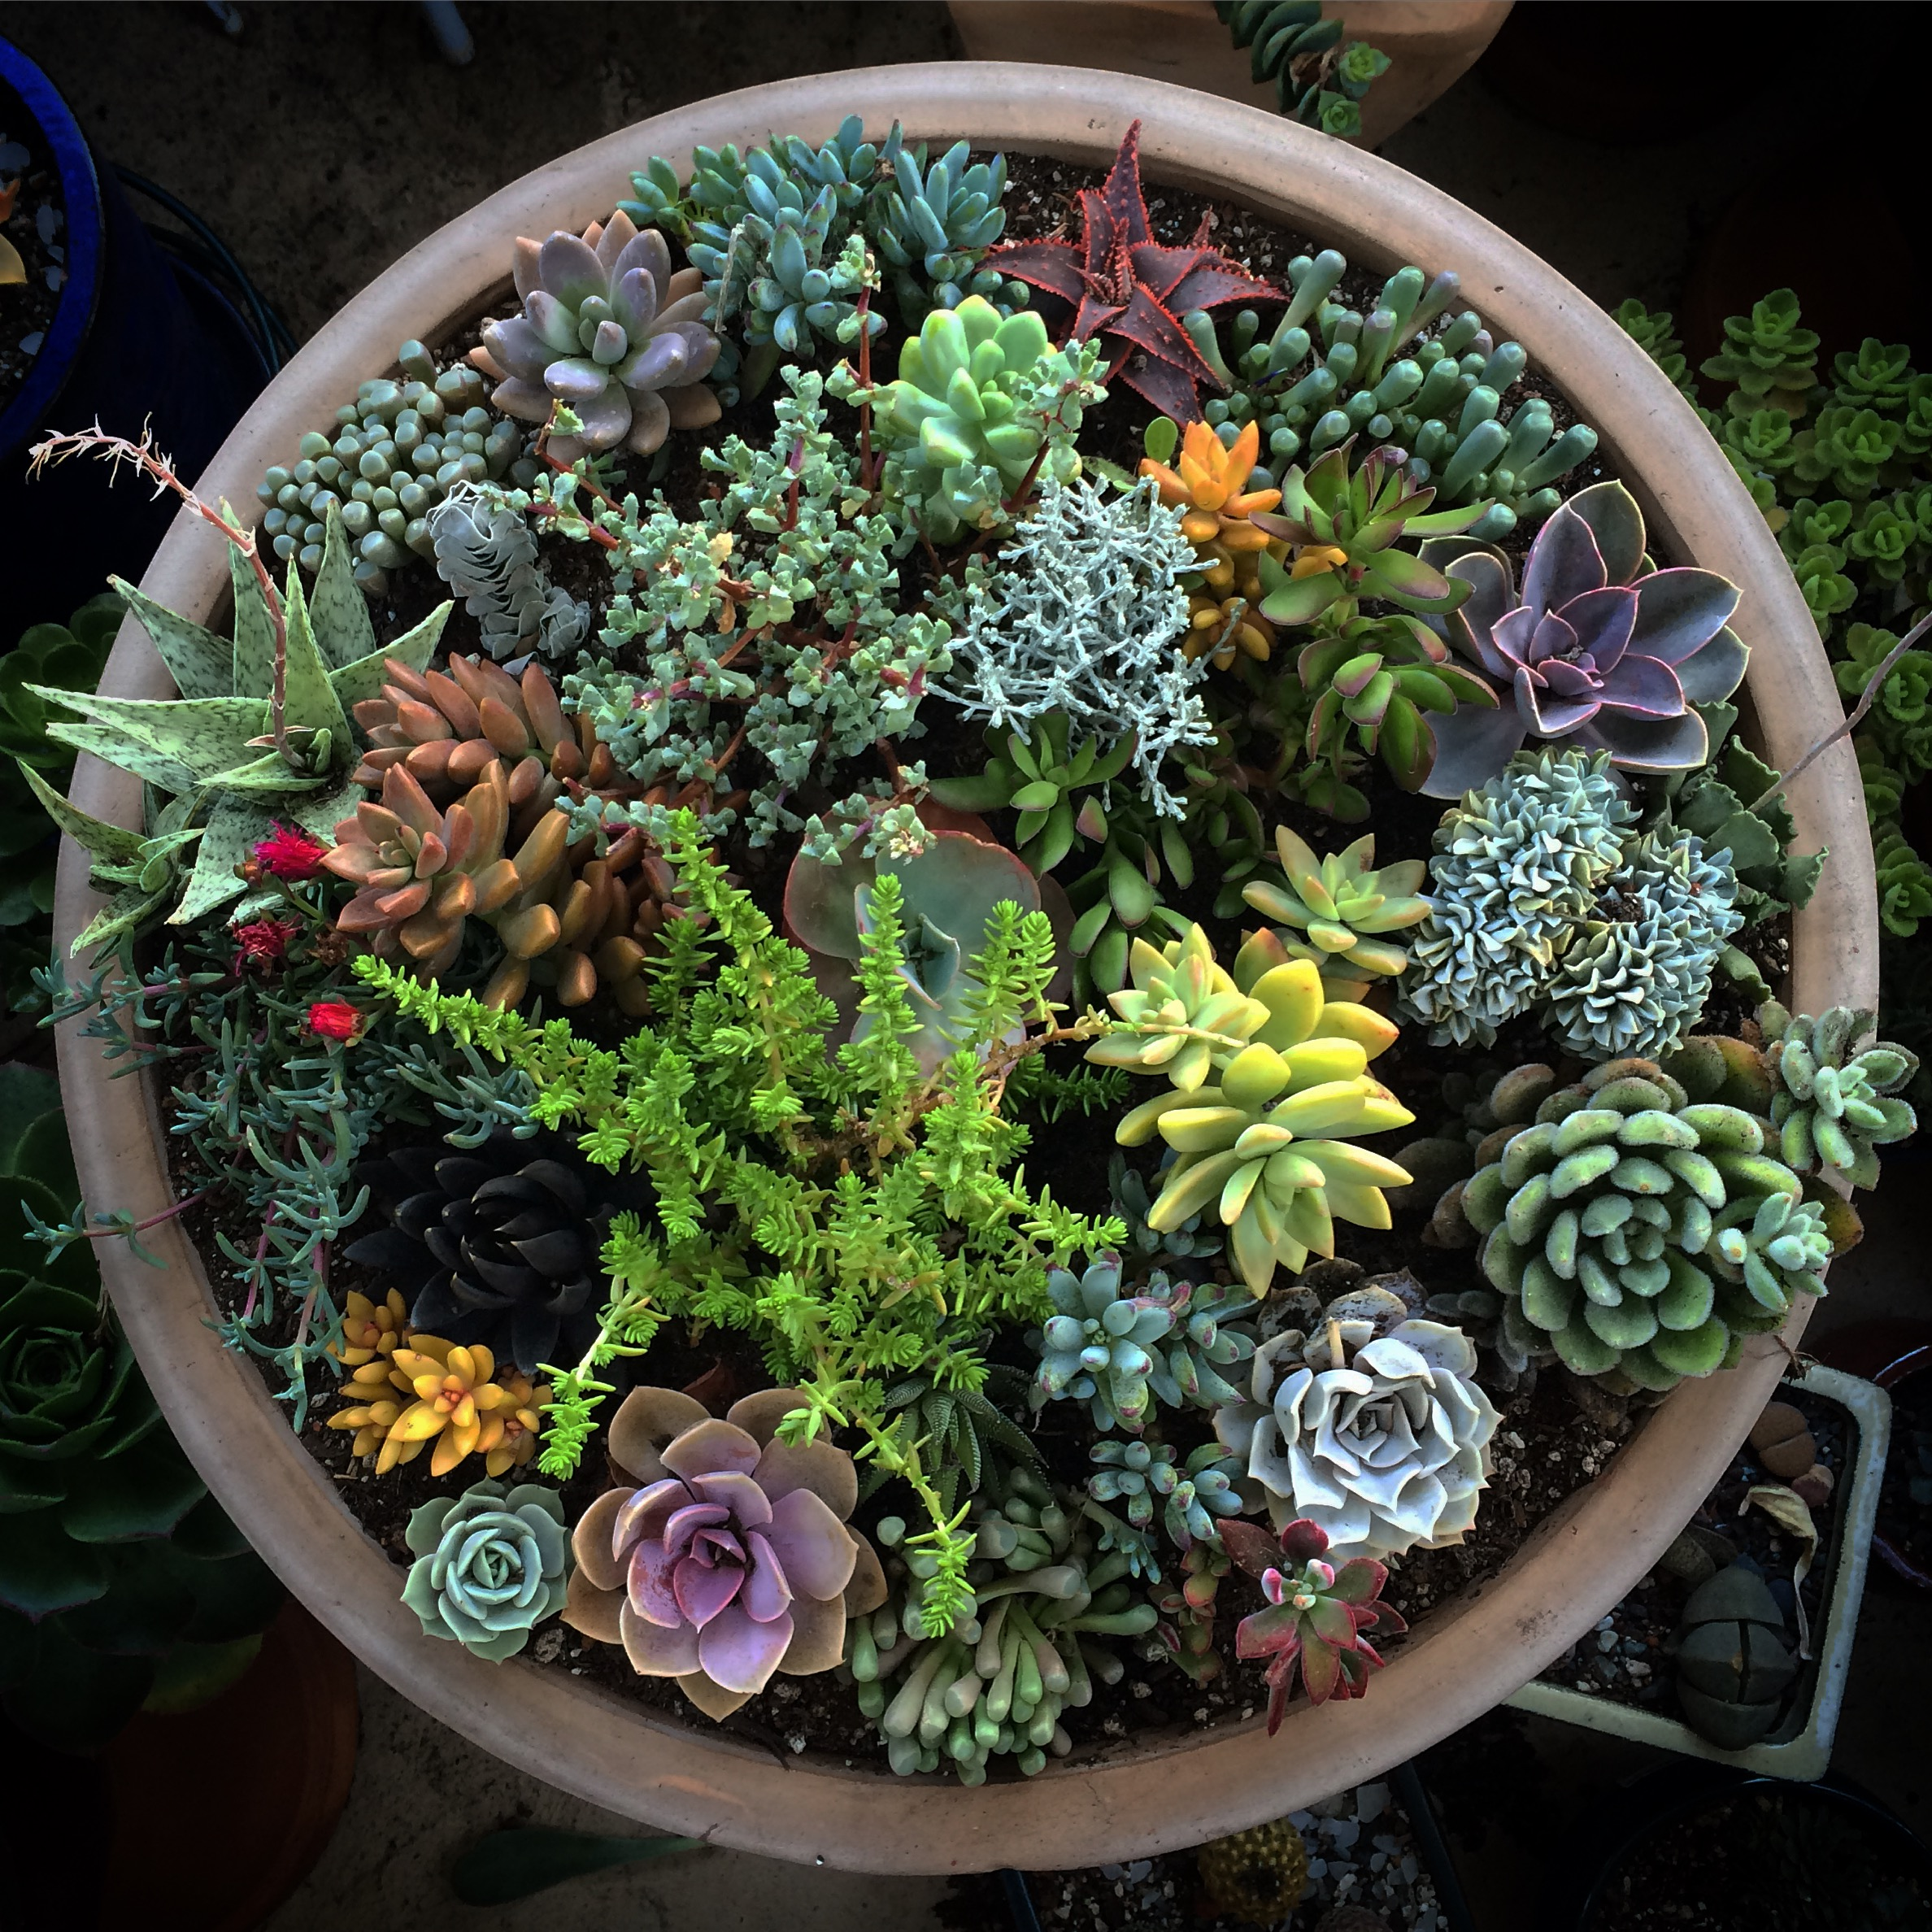 Container planter representing 13 distinct genera of succulent plants from Mexico, South Africa, andAustralia.